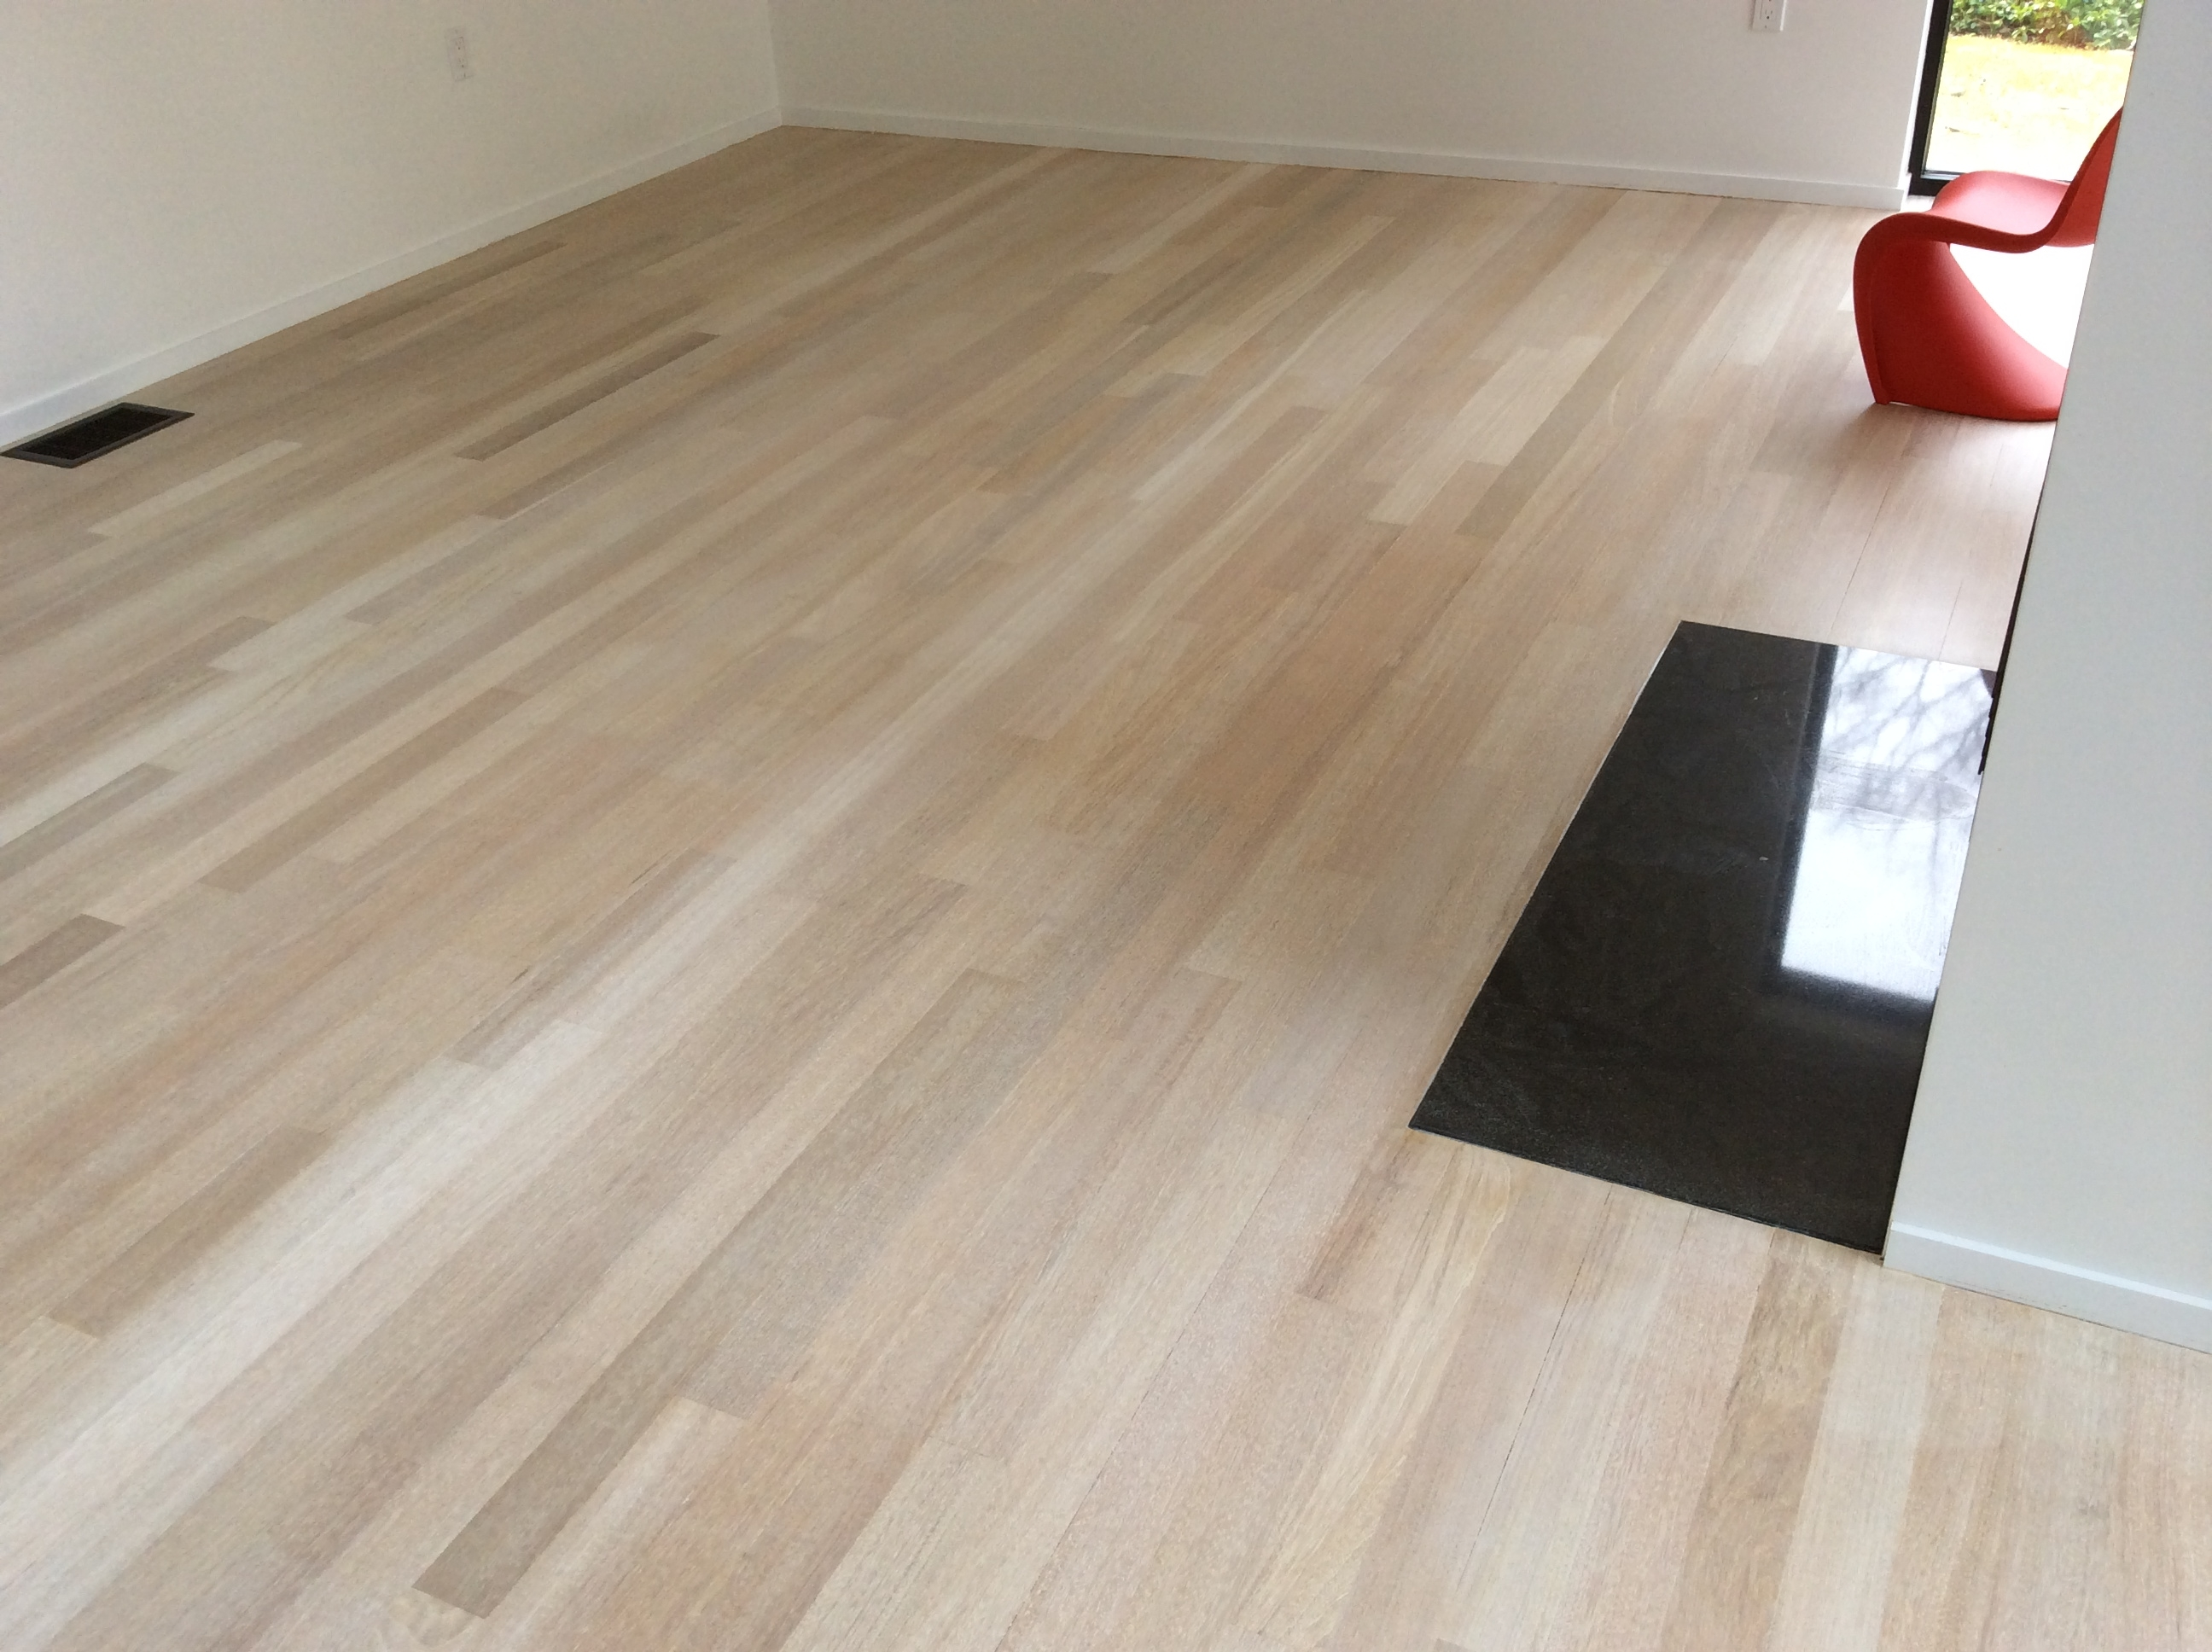 Pickled Oak Wood Floors